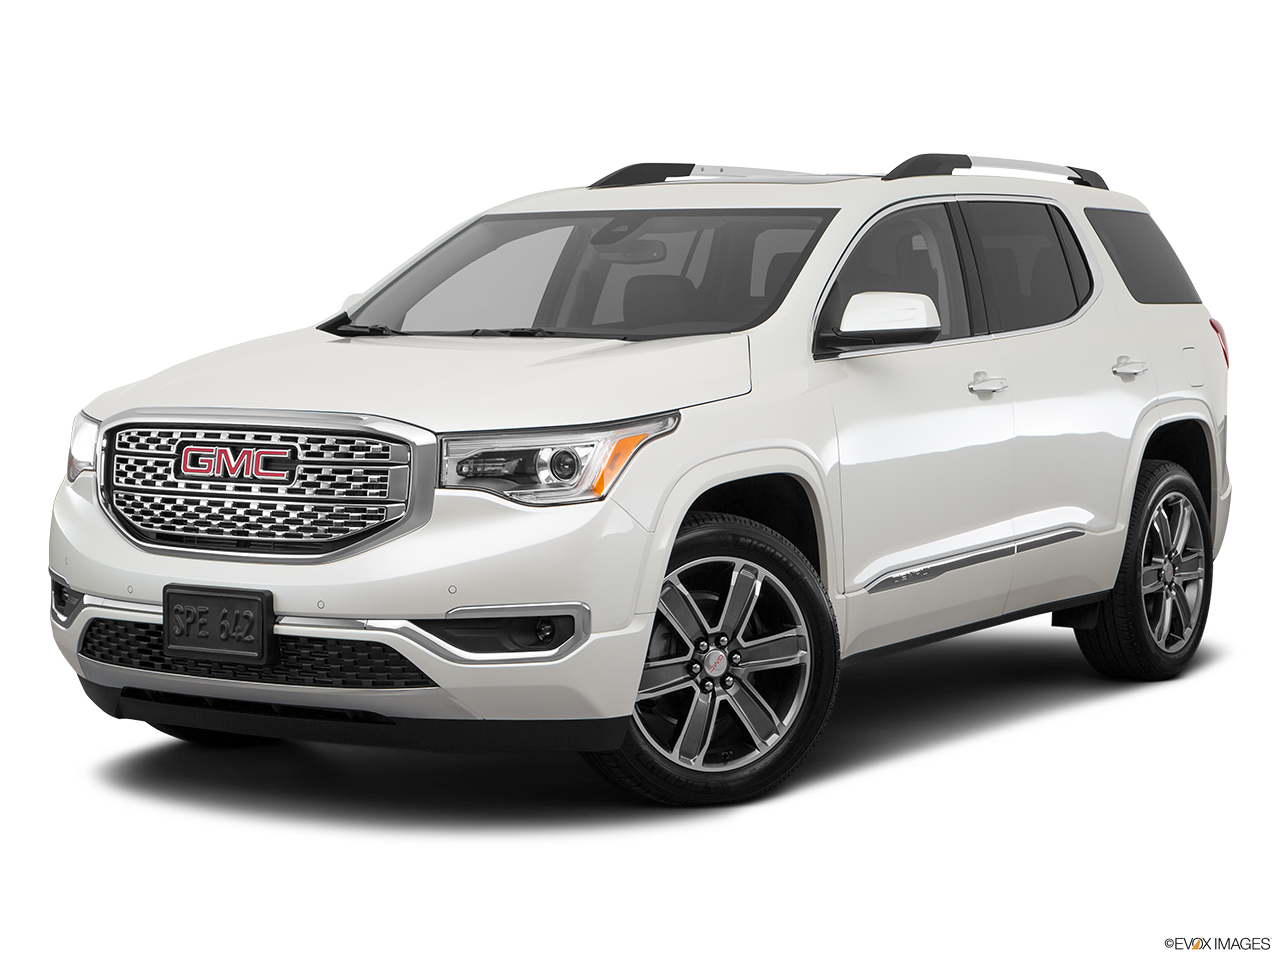 Test Drive A 2017 GMC Terrain at Suburban Buick GMC of Costa Mesa in Costa Mesa